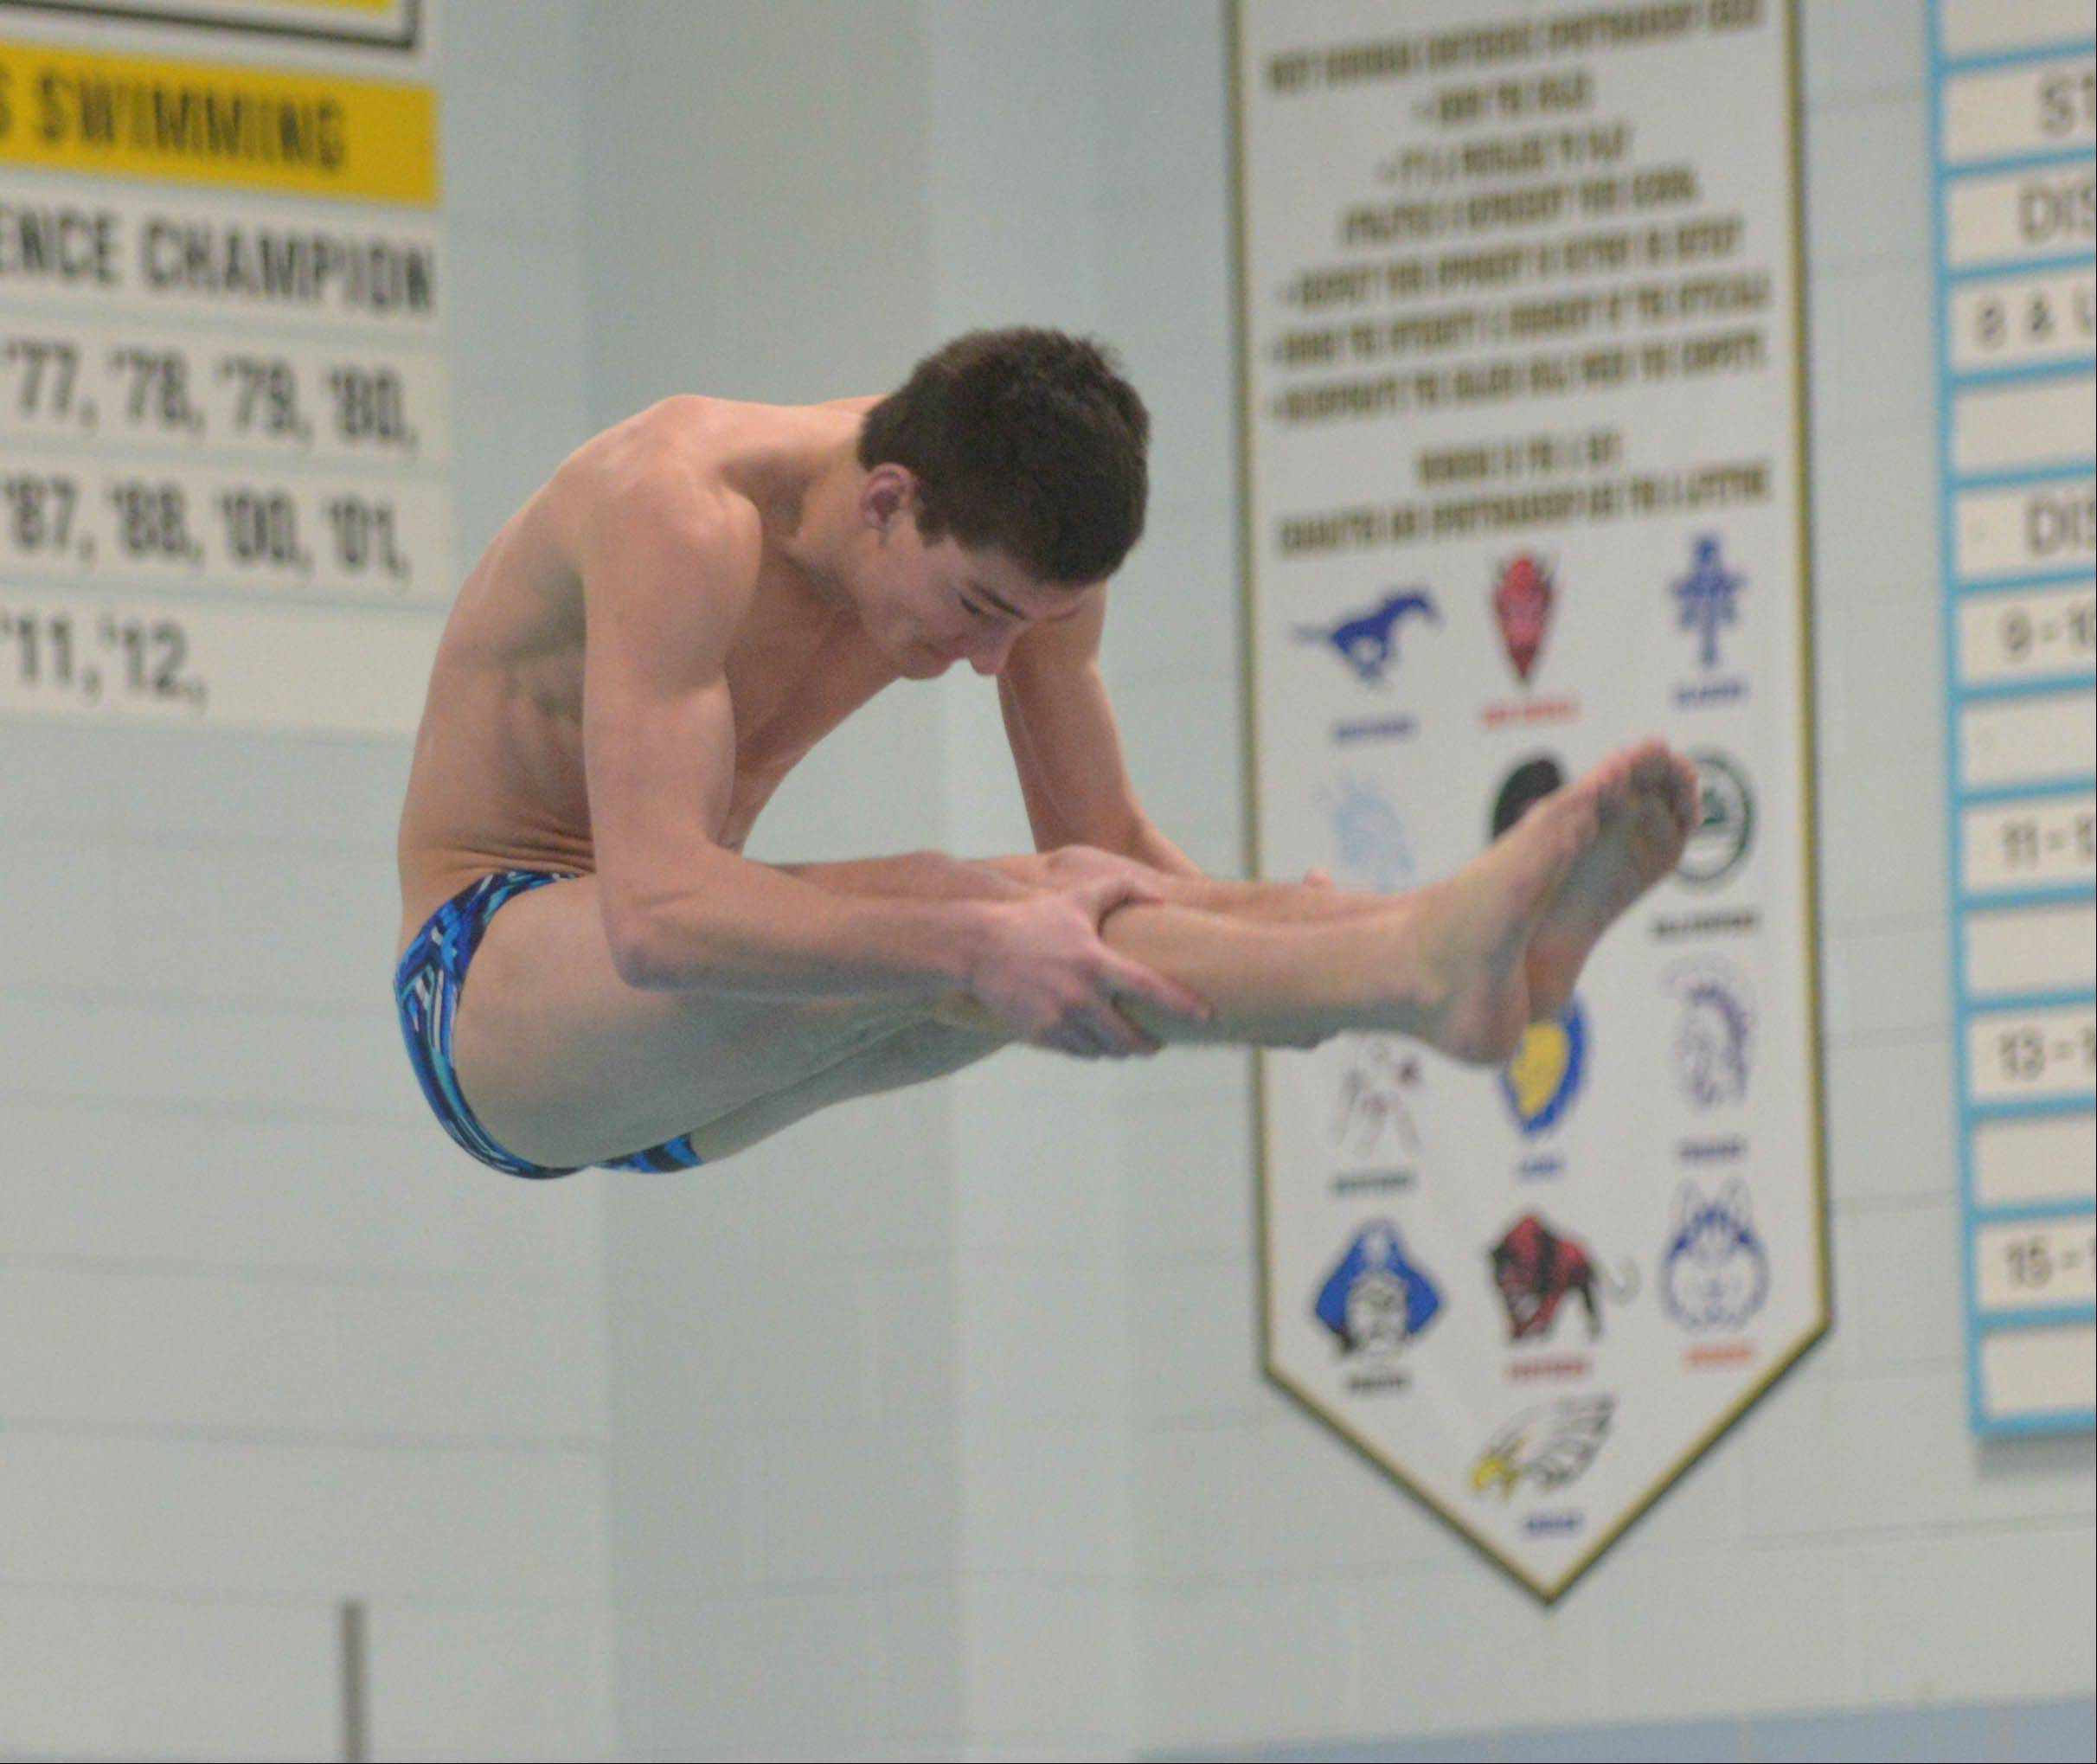 Paul Michna/pmichna@dailyherald.comJack Riely of Lake Park took part in the diving competition at the Hinsdale South College Events boys swimming meet Saturday.